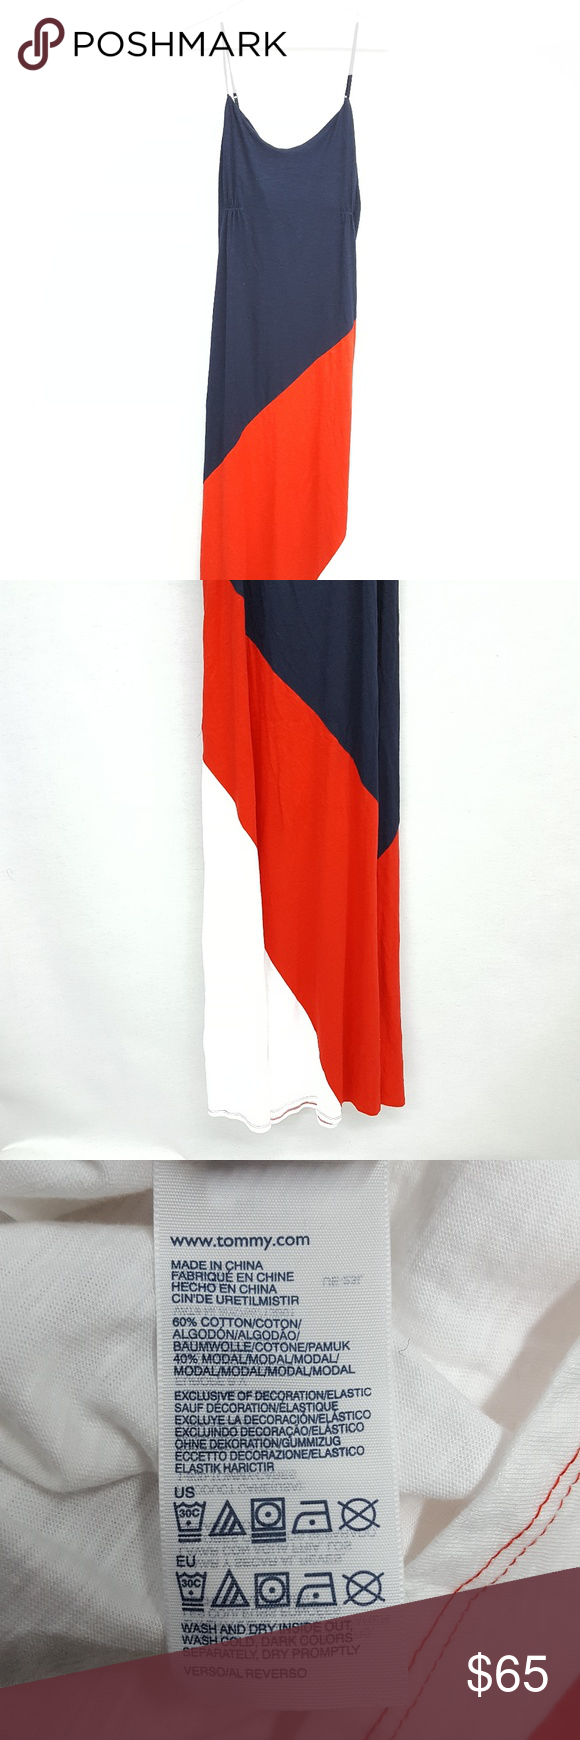 2feb7c5fe7 Tommy Red White Blue Color block Maxi Dress A2 Red white and blue color  block maxi dress from TOMMY Hilfiger. NWT Features spaghetti straps and  slightly ...